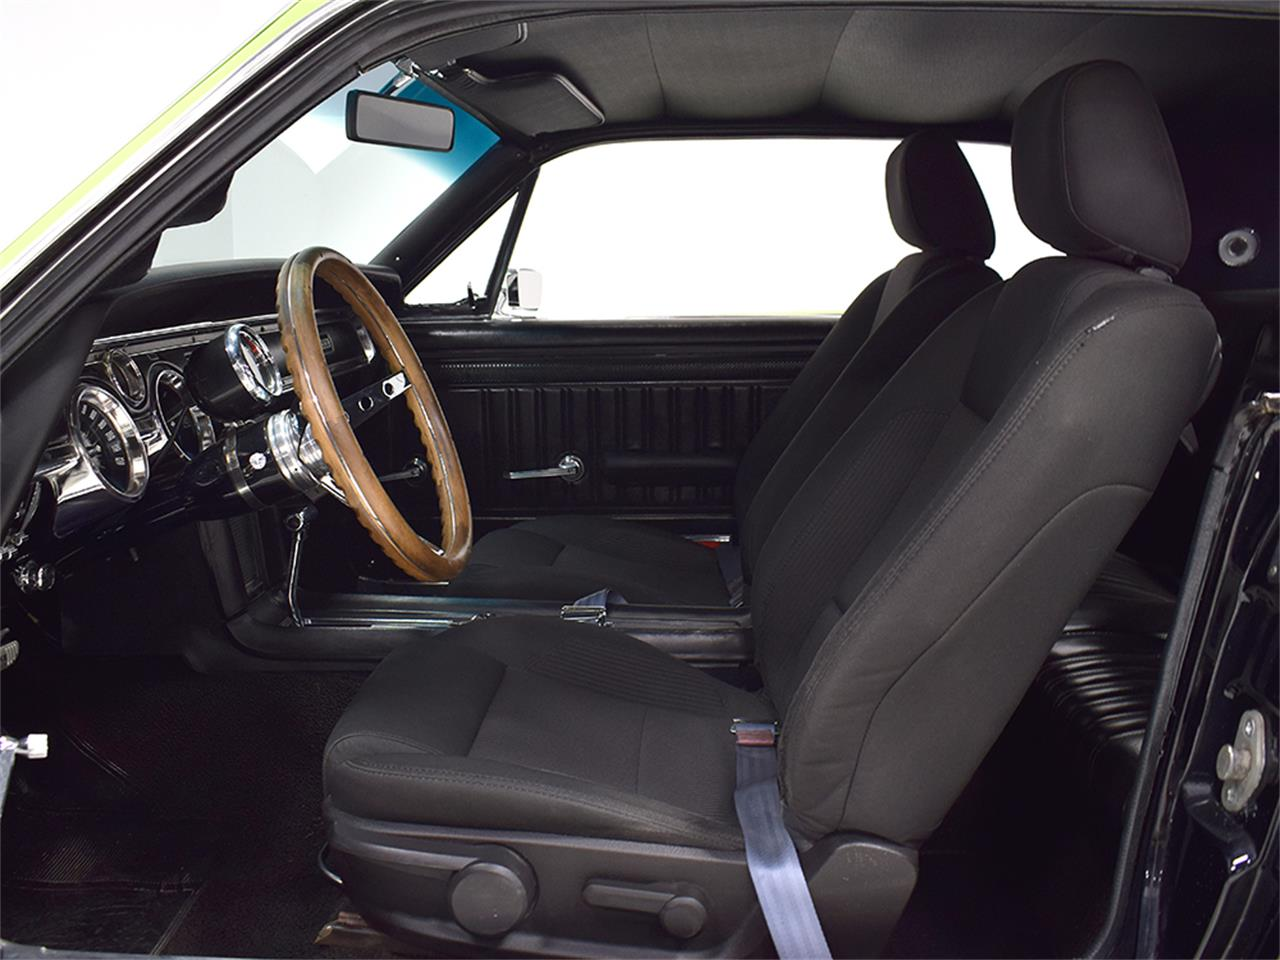 Large Picture of Classic 1967 Mercury Cougar located in Macedonia Ohio - $49,900.00 Offered by Harwood Motors, LTD. - MH5X